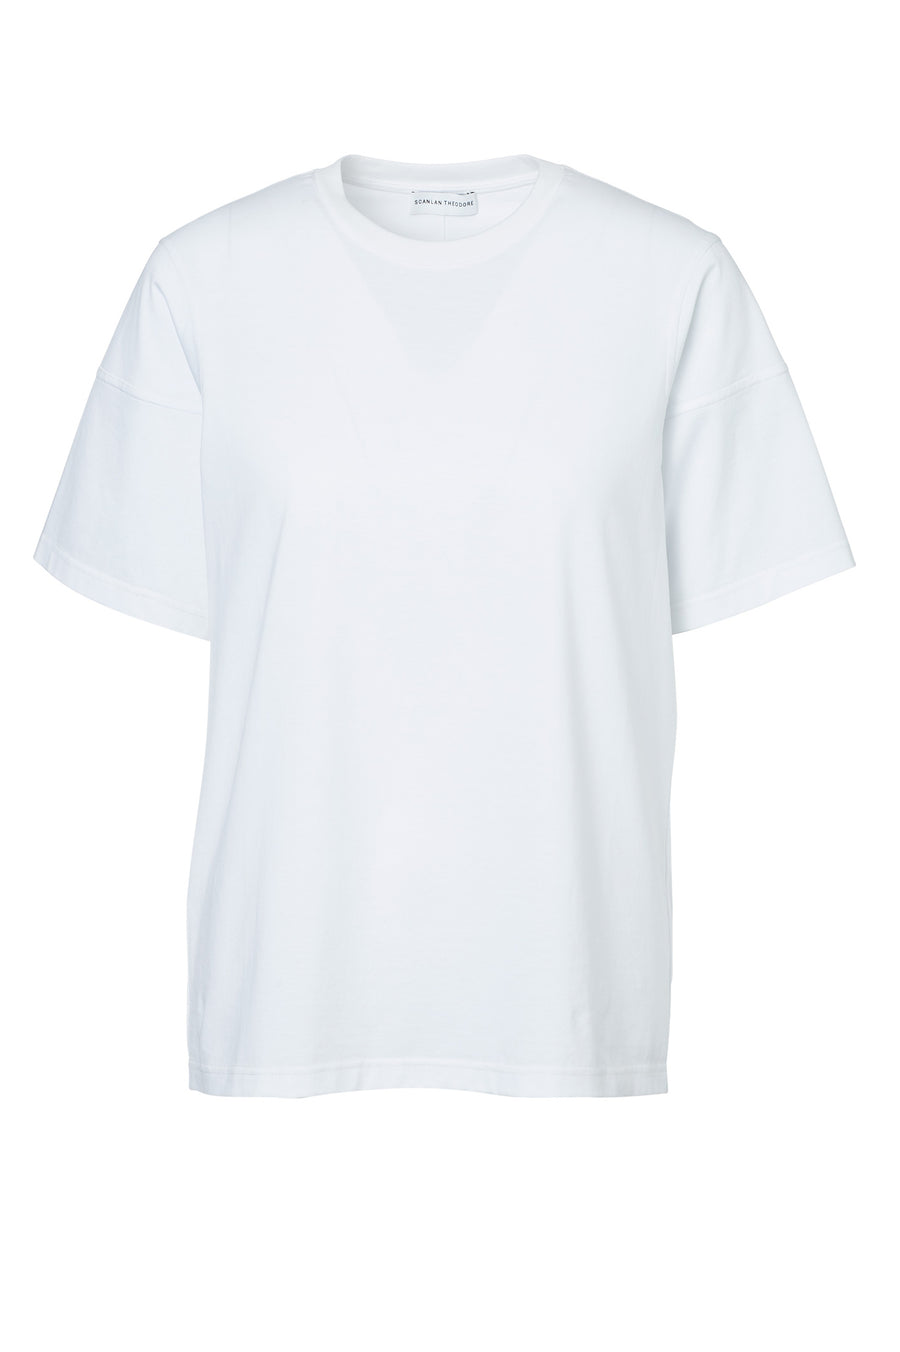 MERCERISED LOOSE FIT TSHIRT, WHITE color